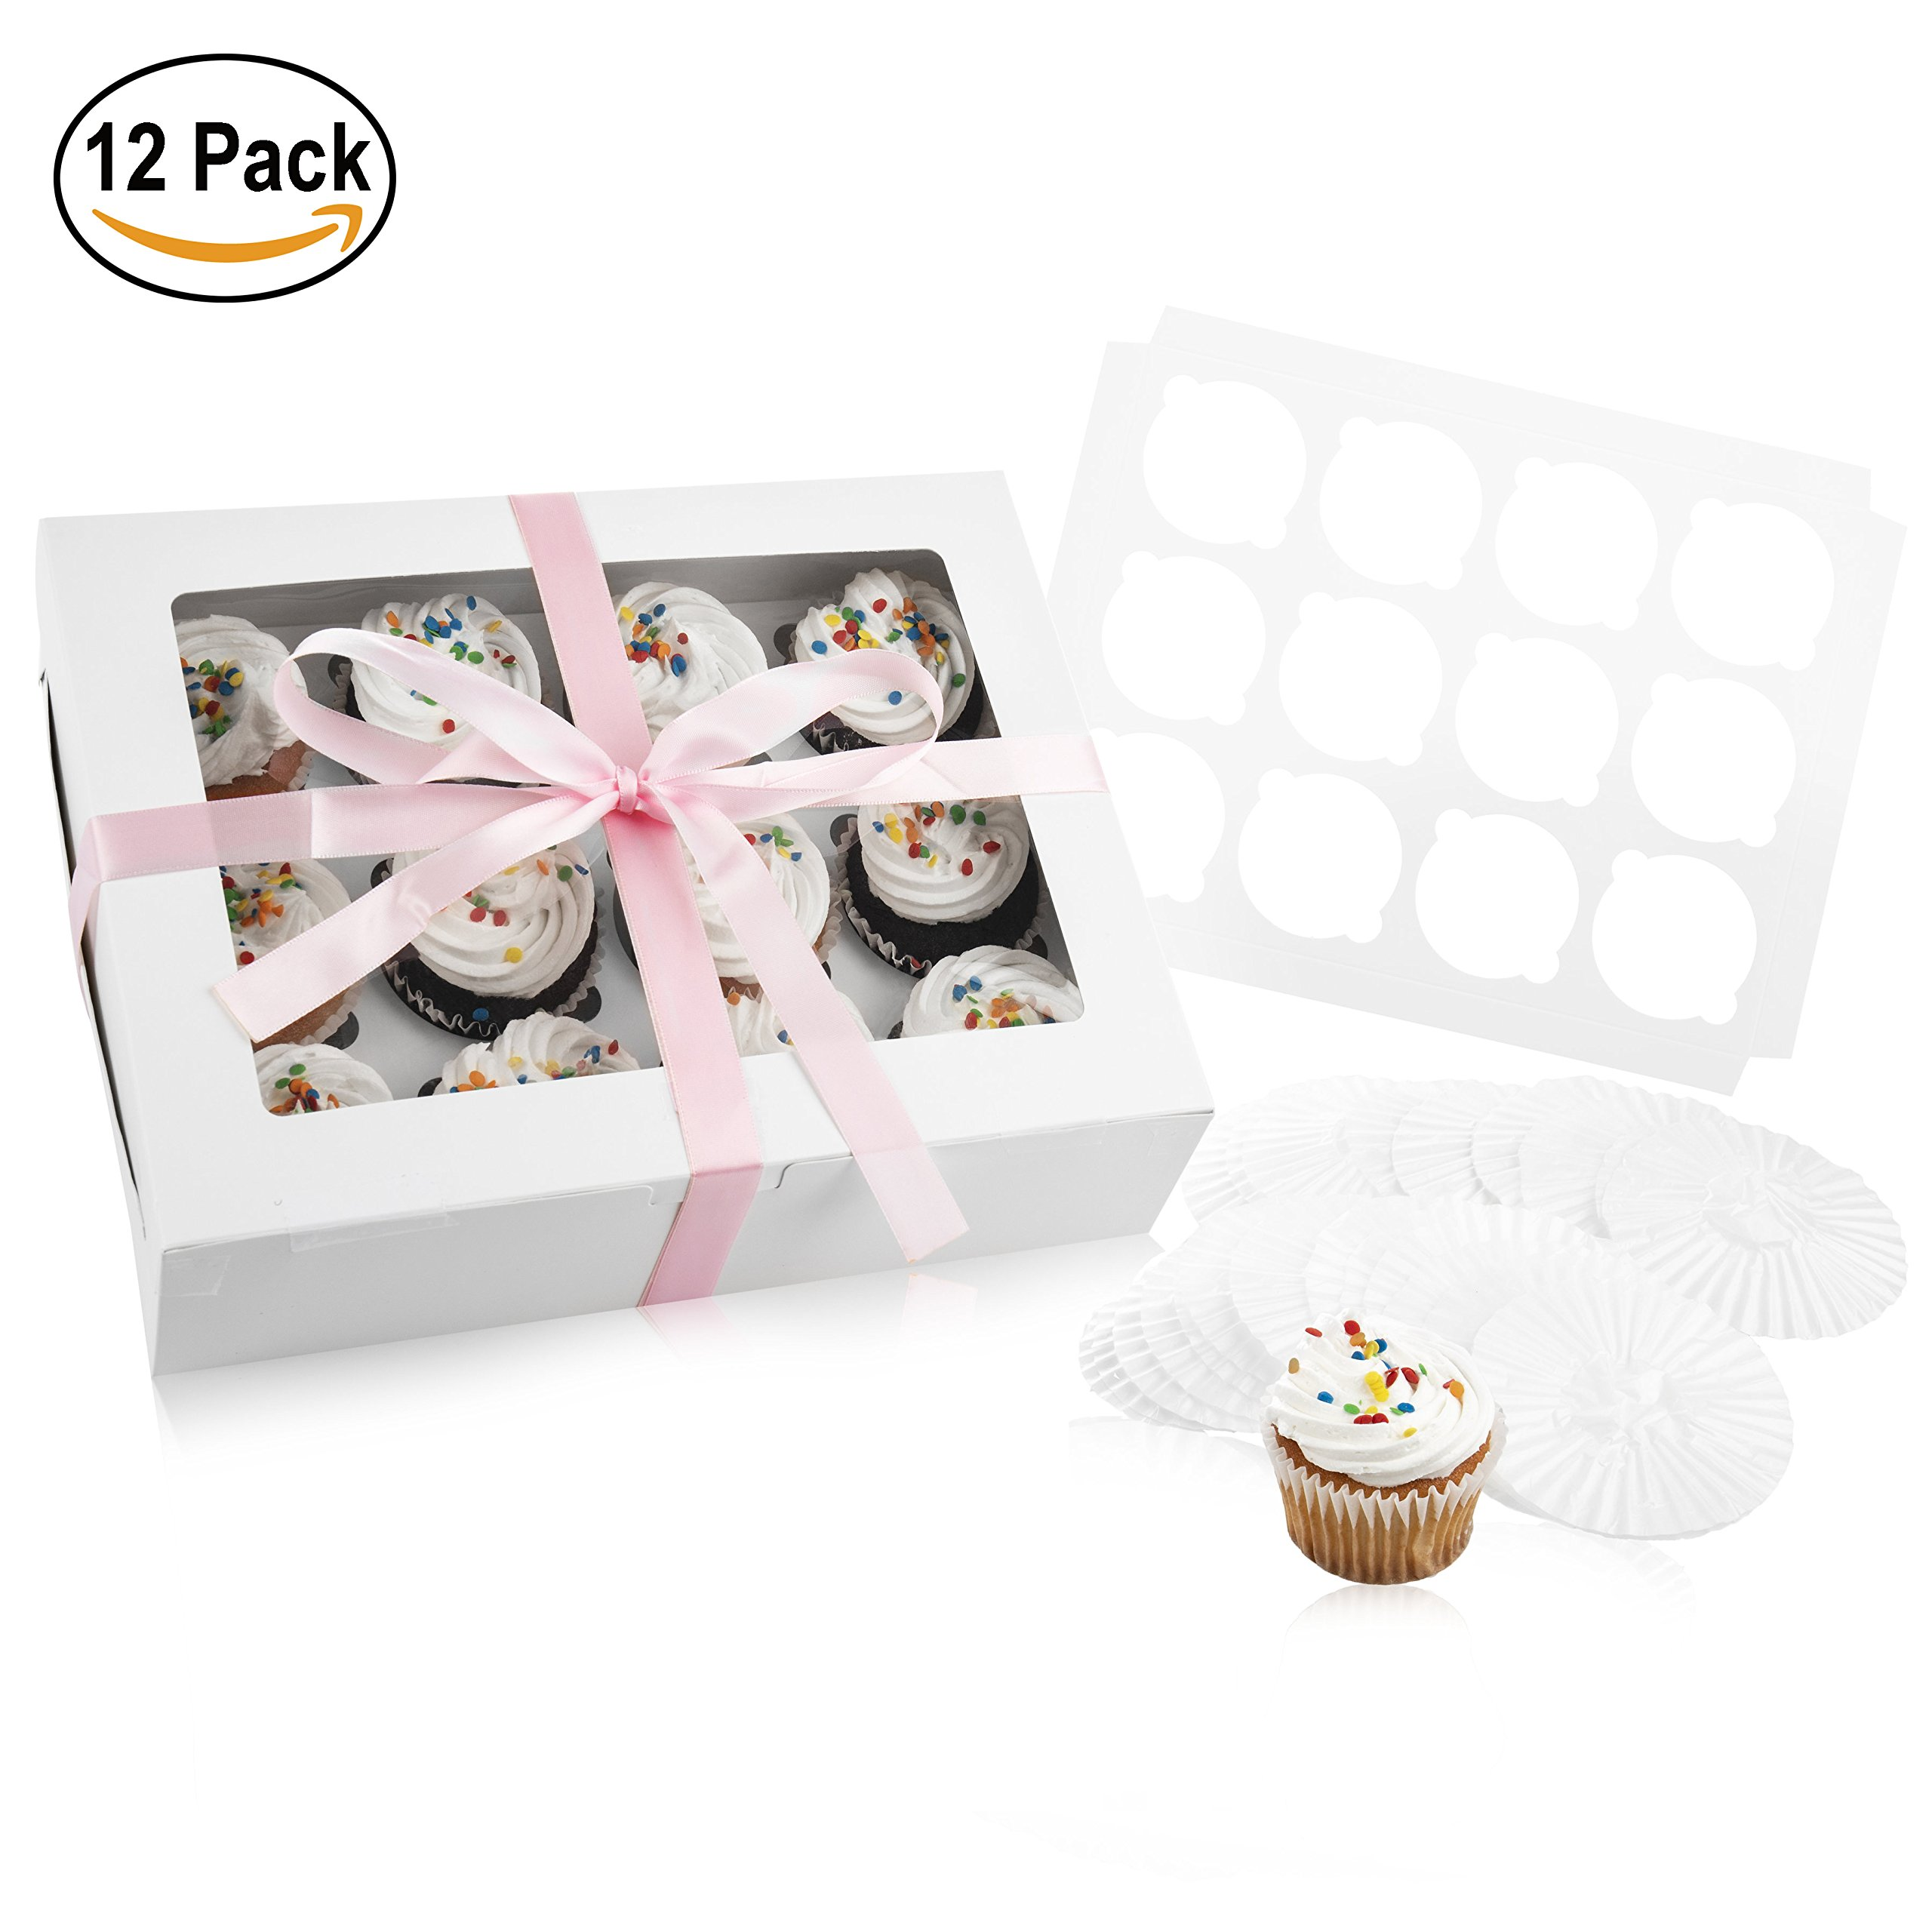 Disposable Cupcake Holder Bakery Box: 12 Treat Carrier & Storage Boxes with Clear Window & 12 Inserts or Holders for a Dozen Standard Cupcakes - Includes 50 Cup Cake Baking Cups & Ribbon